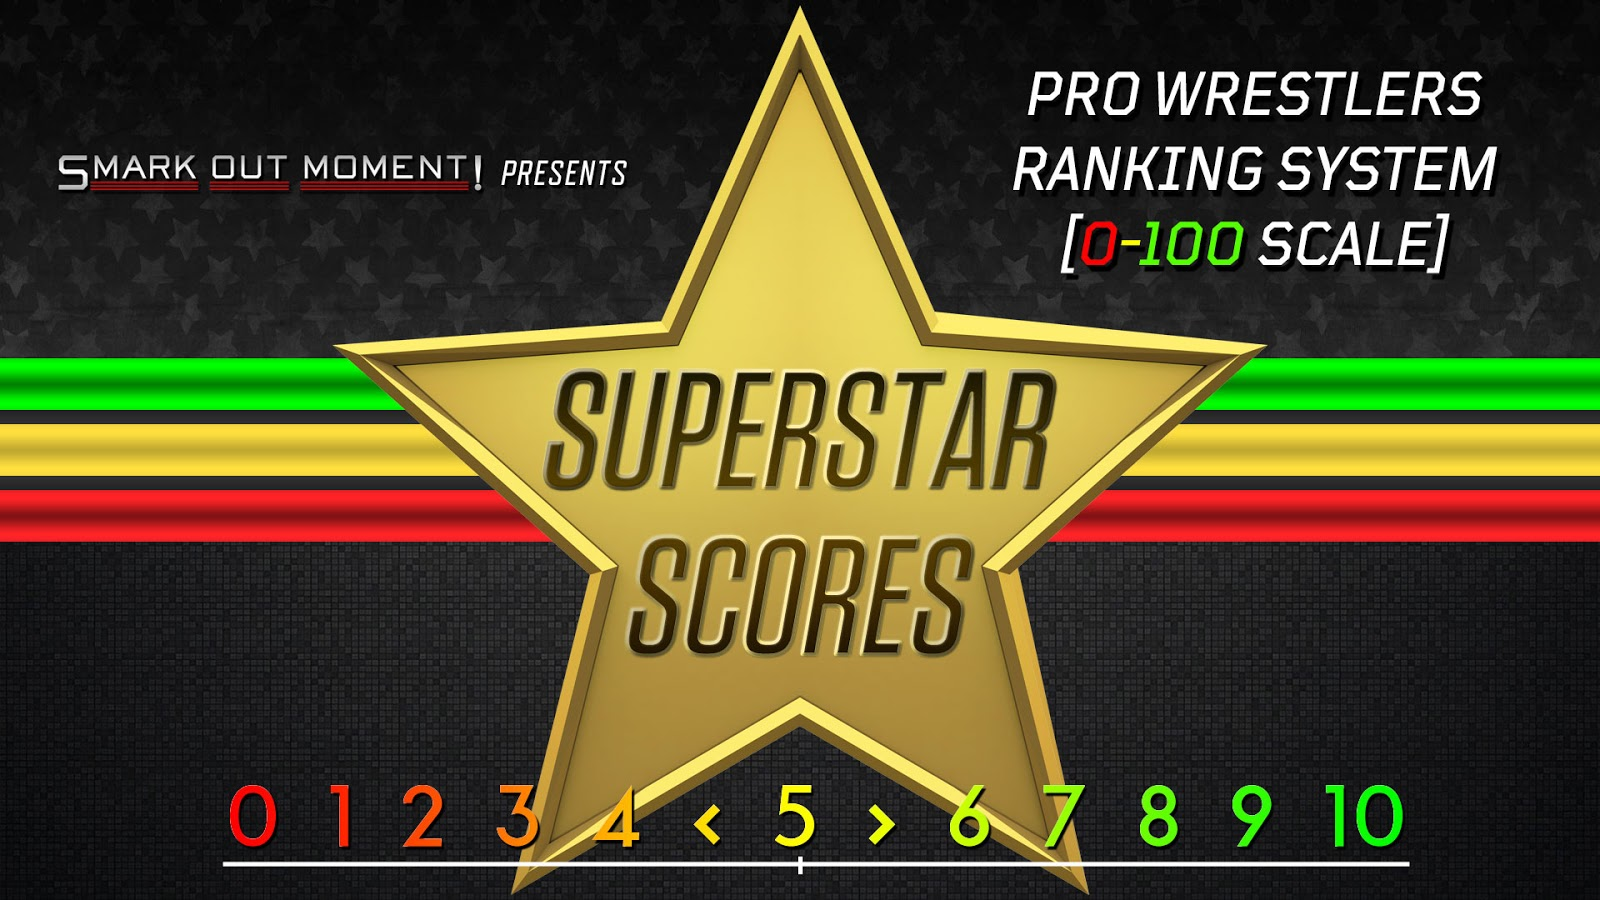 Paige rating scale 1-100 Is Paige the best wrestler ever?